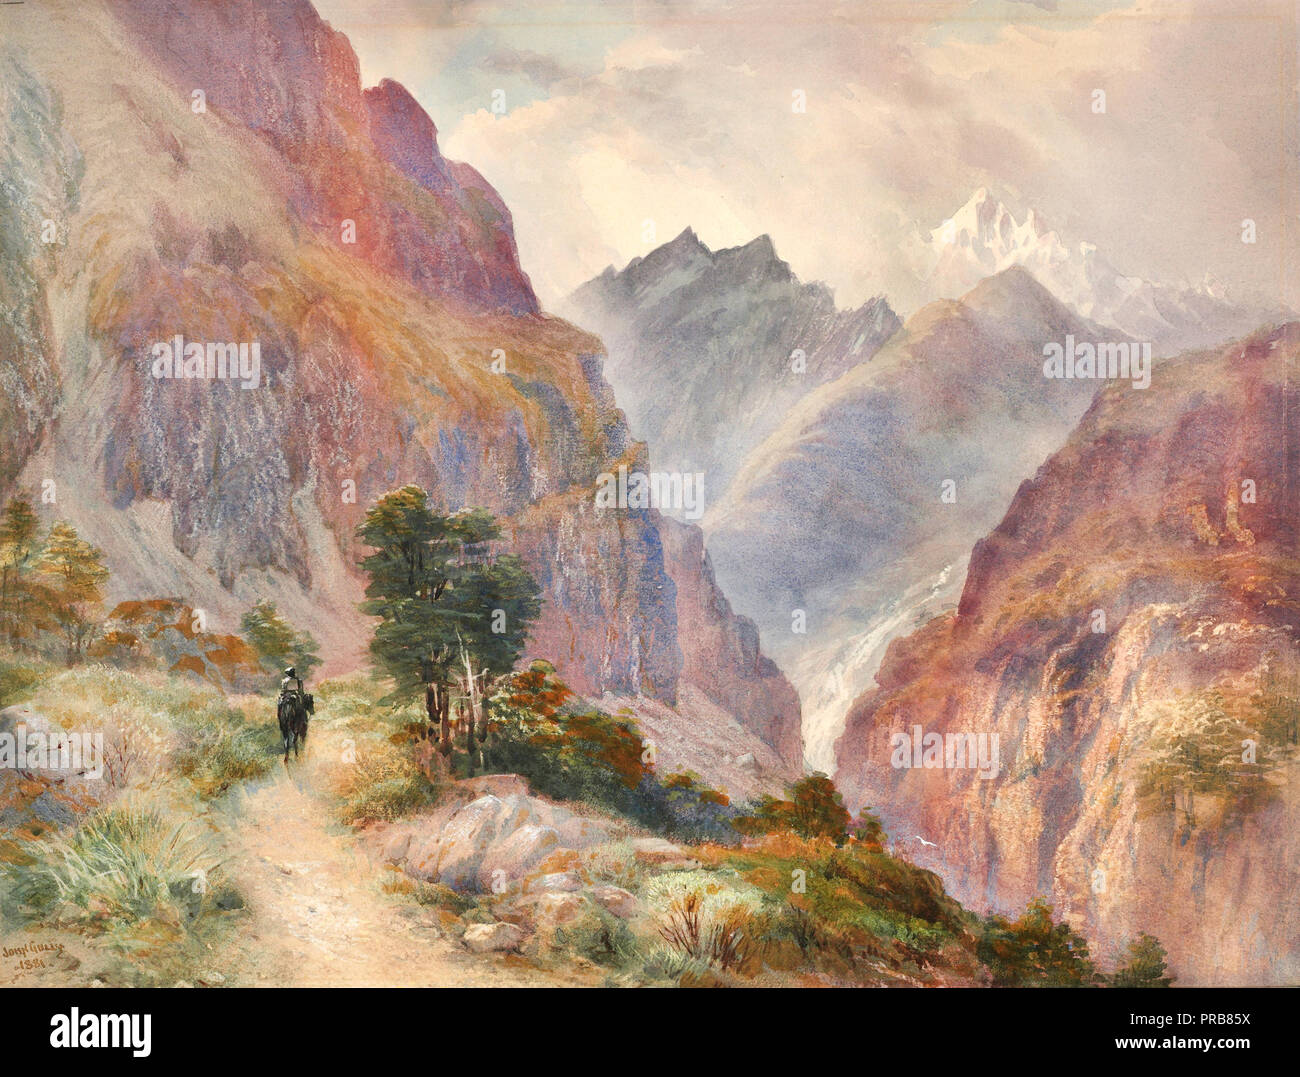 John Gully, In the Southern Alps 1881 Watercolor, Museum of New Zealand Te Papa Tongarewa, Wellington, New Zealand. - Stock Image